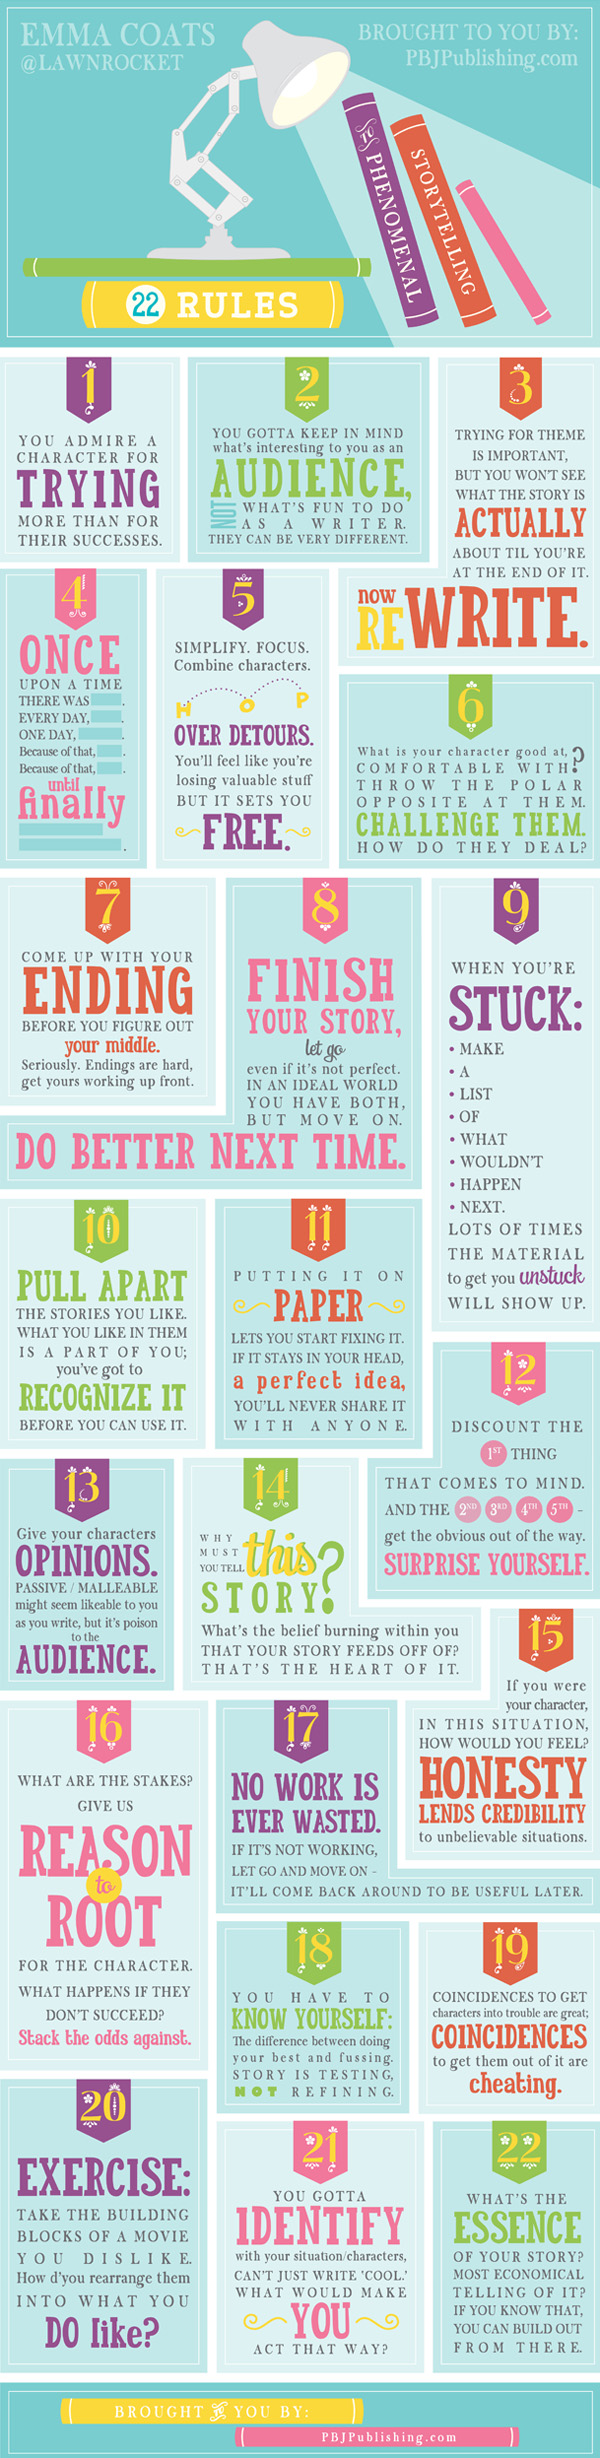 Emma Coats: 22 Rules of Storytelling | Infographic A Day